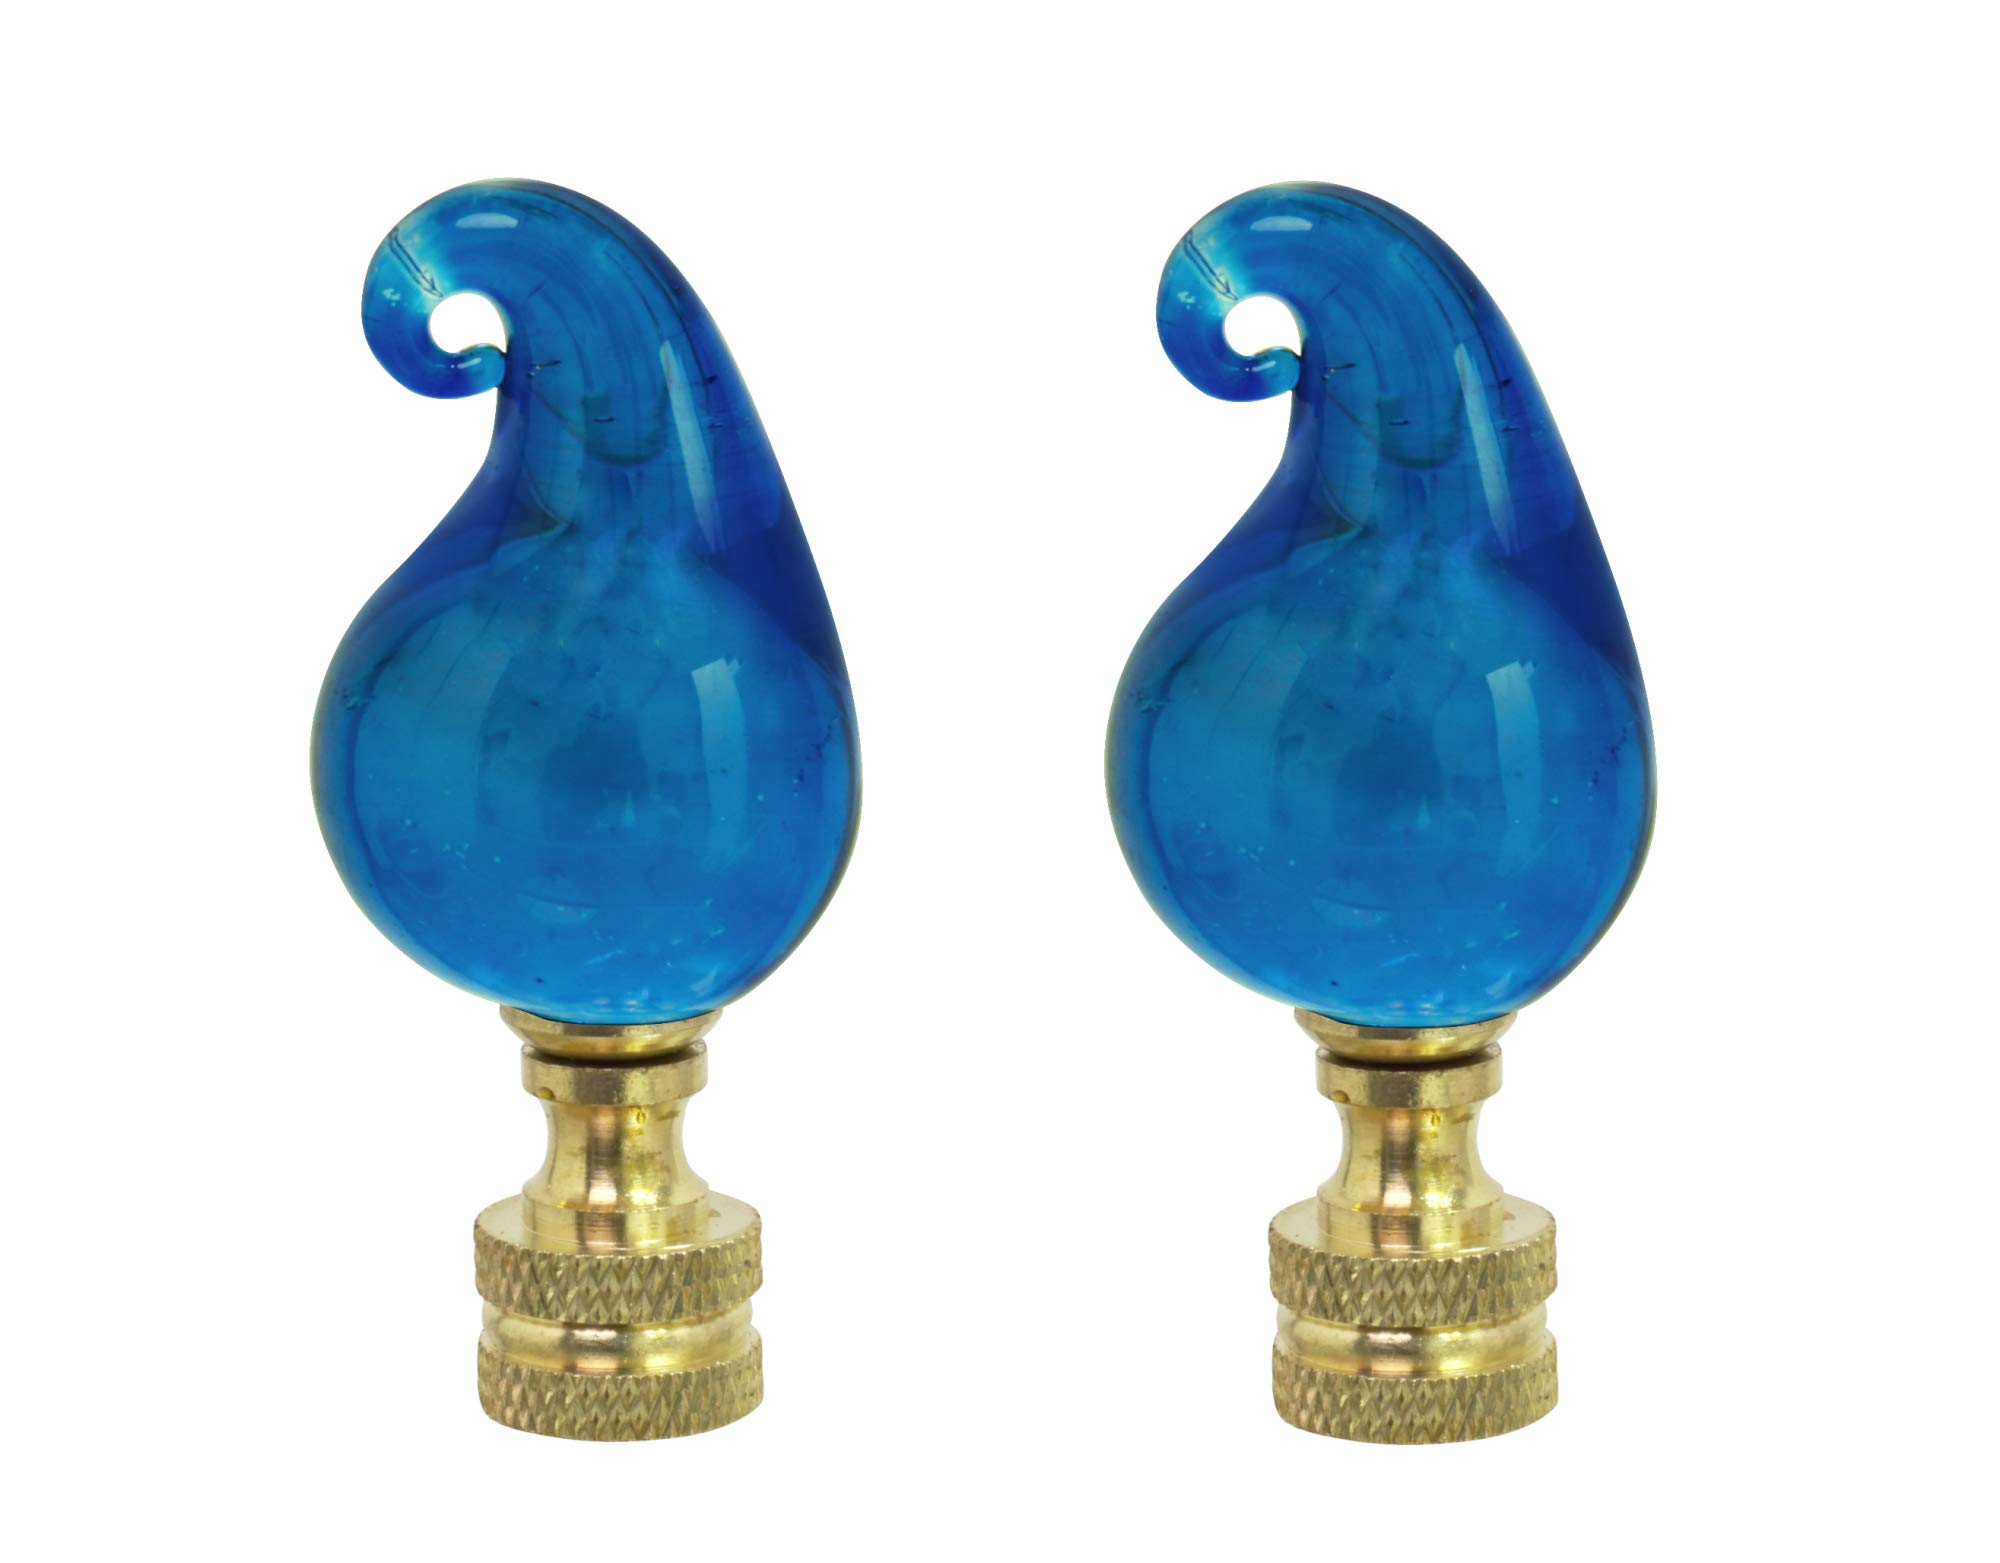 Aspen Creative 24016-12, 2 Pack Blue Glass Lamp Solid Brass Finish, 2 1/2'' Tall Finial, Blue & White